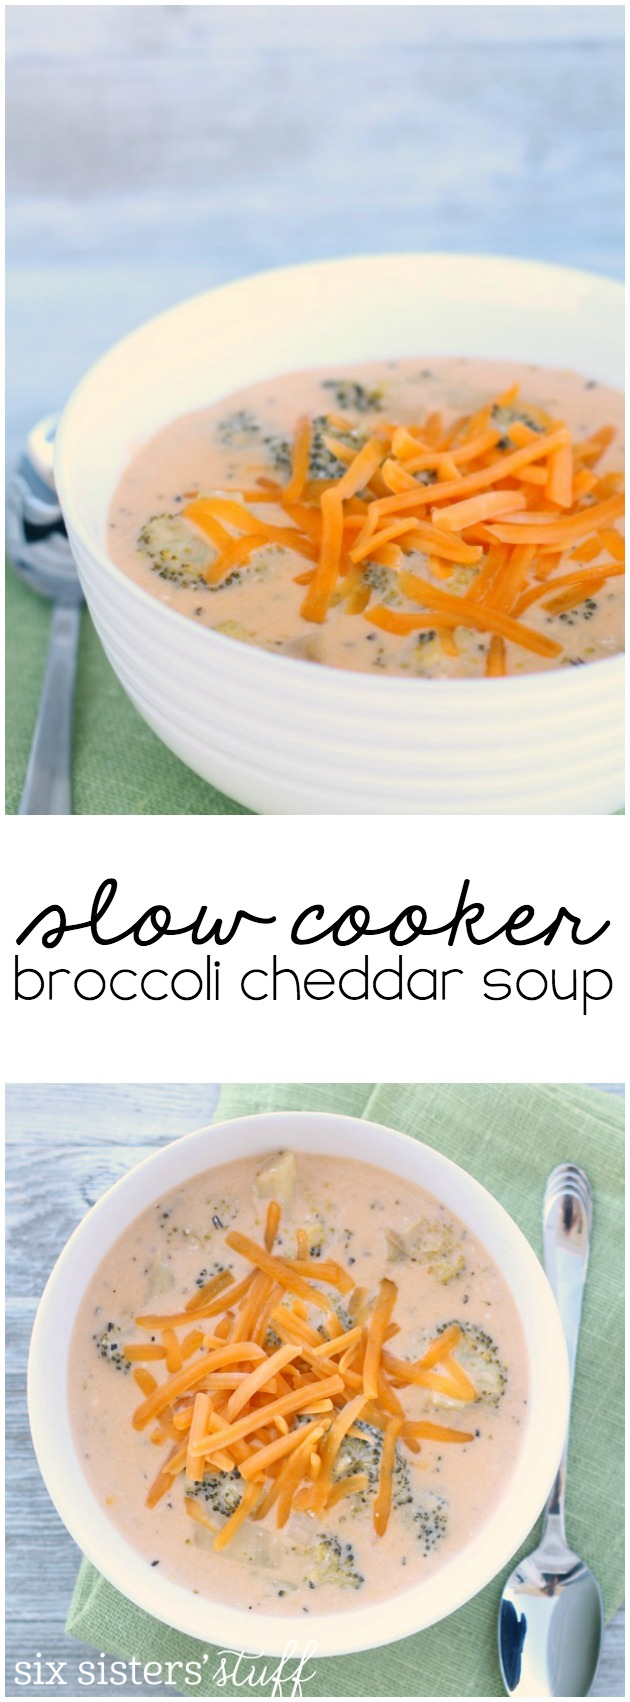 Slow Cooker Broccoli Cheddar Soup from SixSistersStuff.com. So easy to make and so delicious!